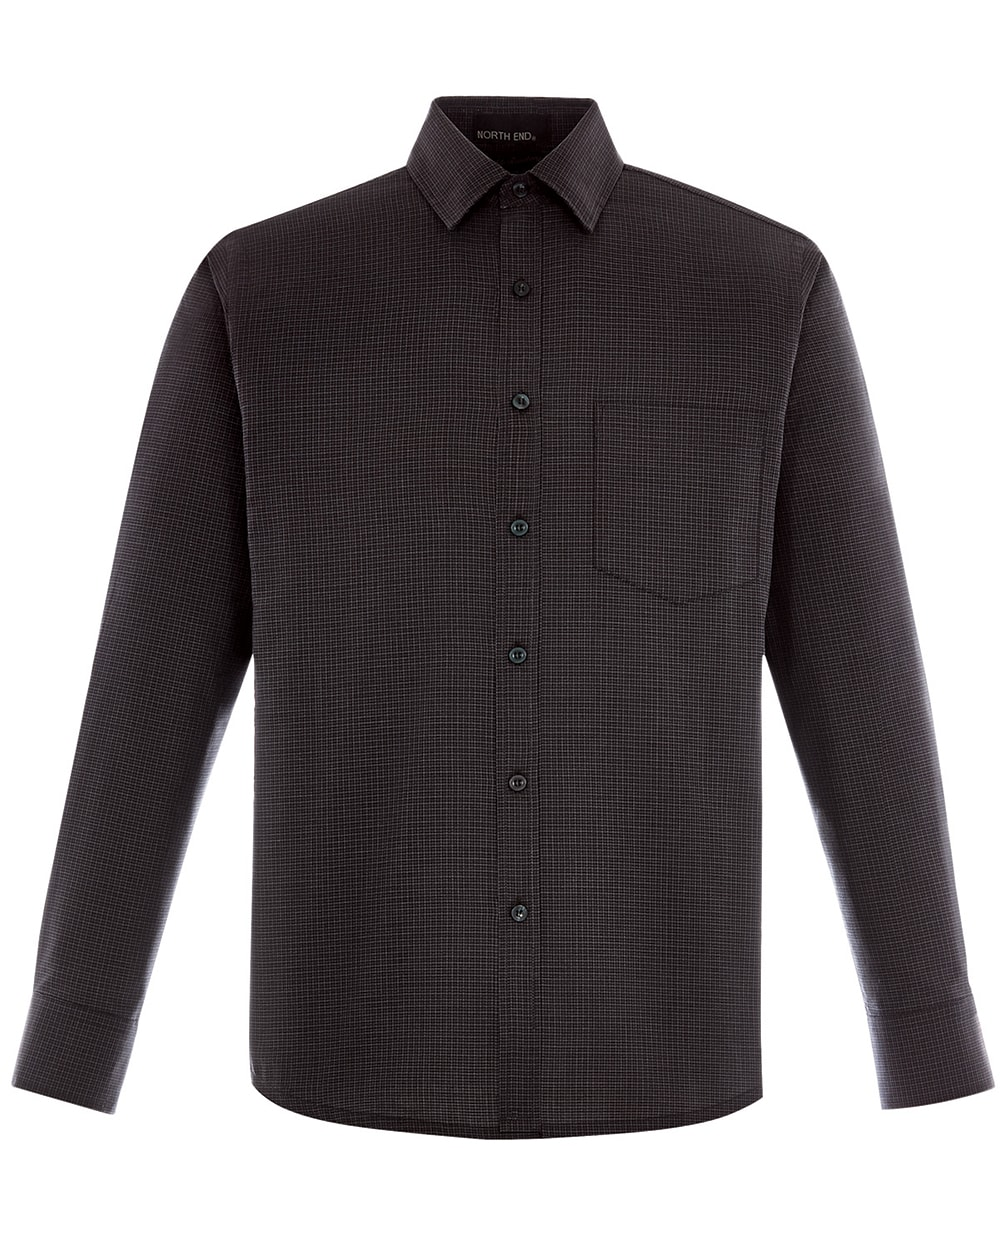 Picture of North End Men's Paramount Wrinkle-Resistant Twill Checkered Shirt